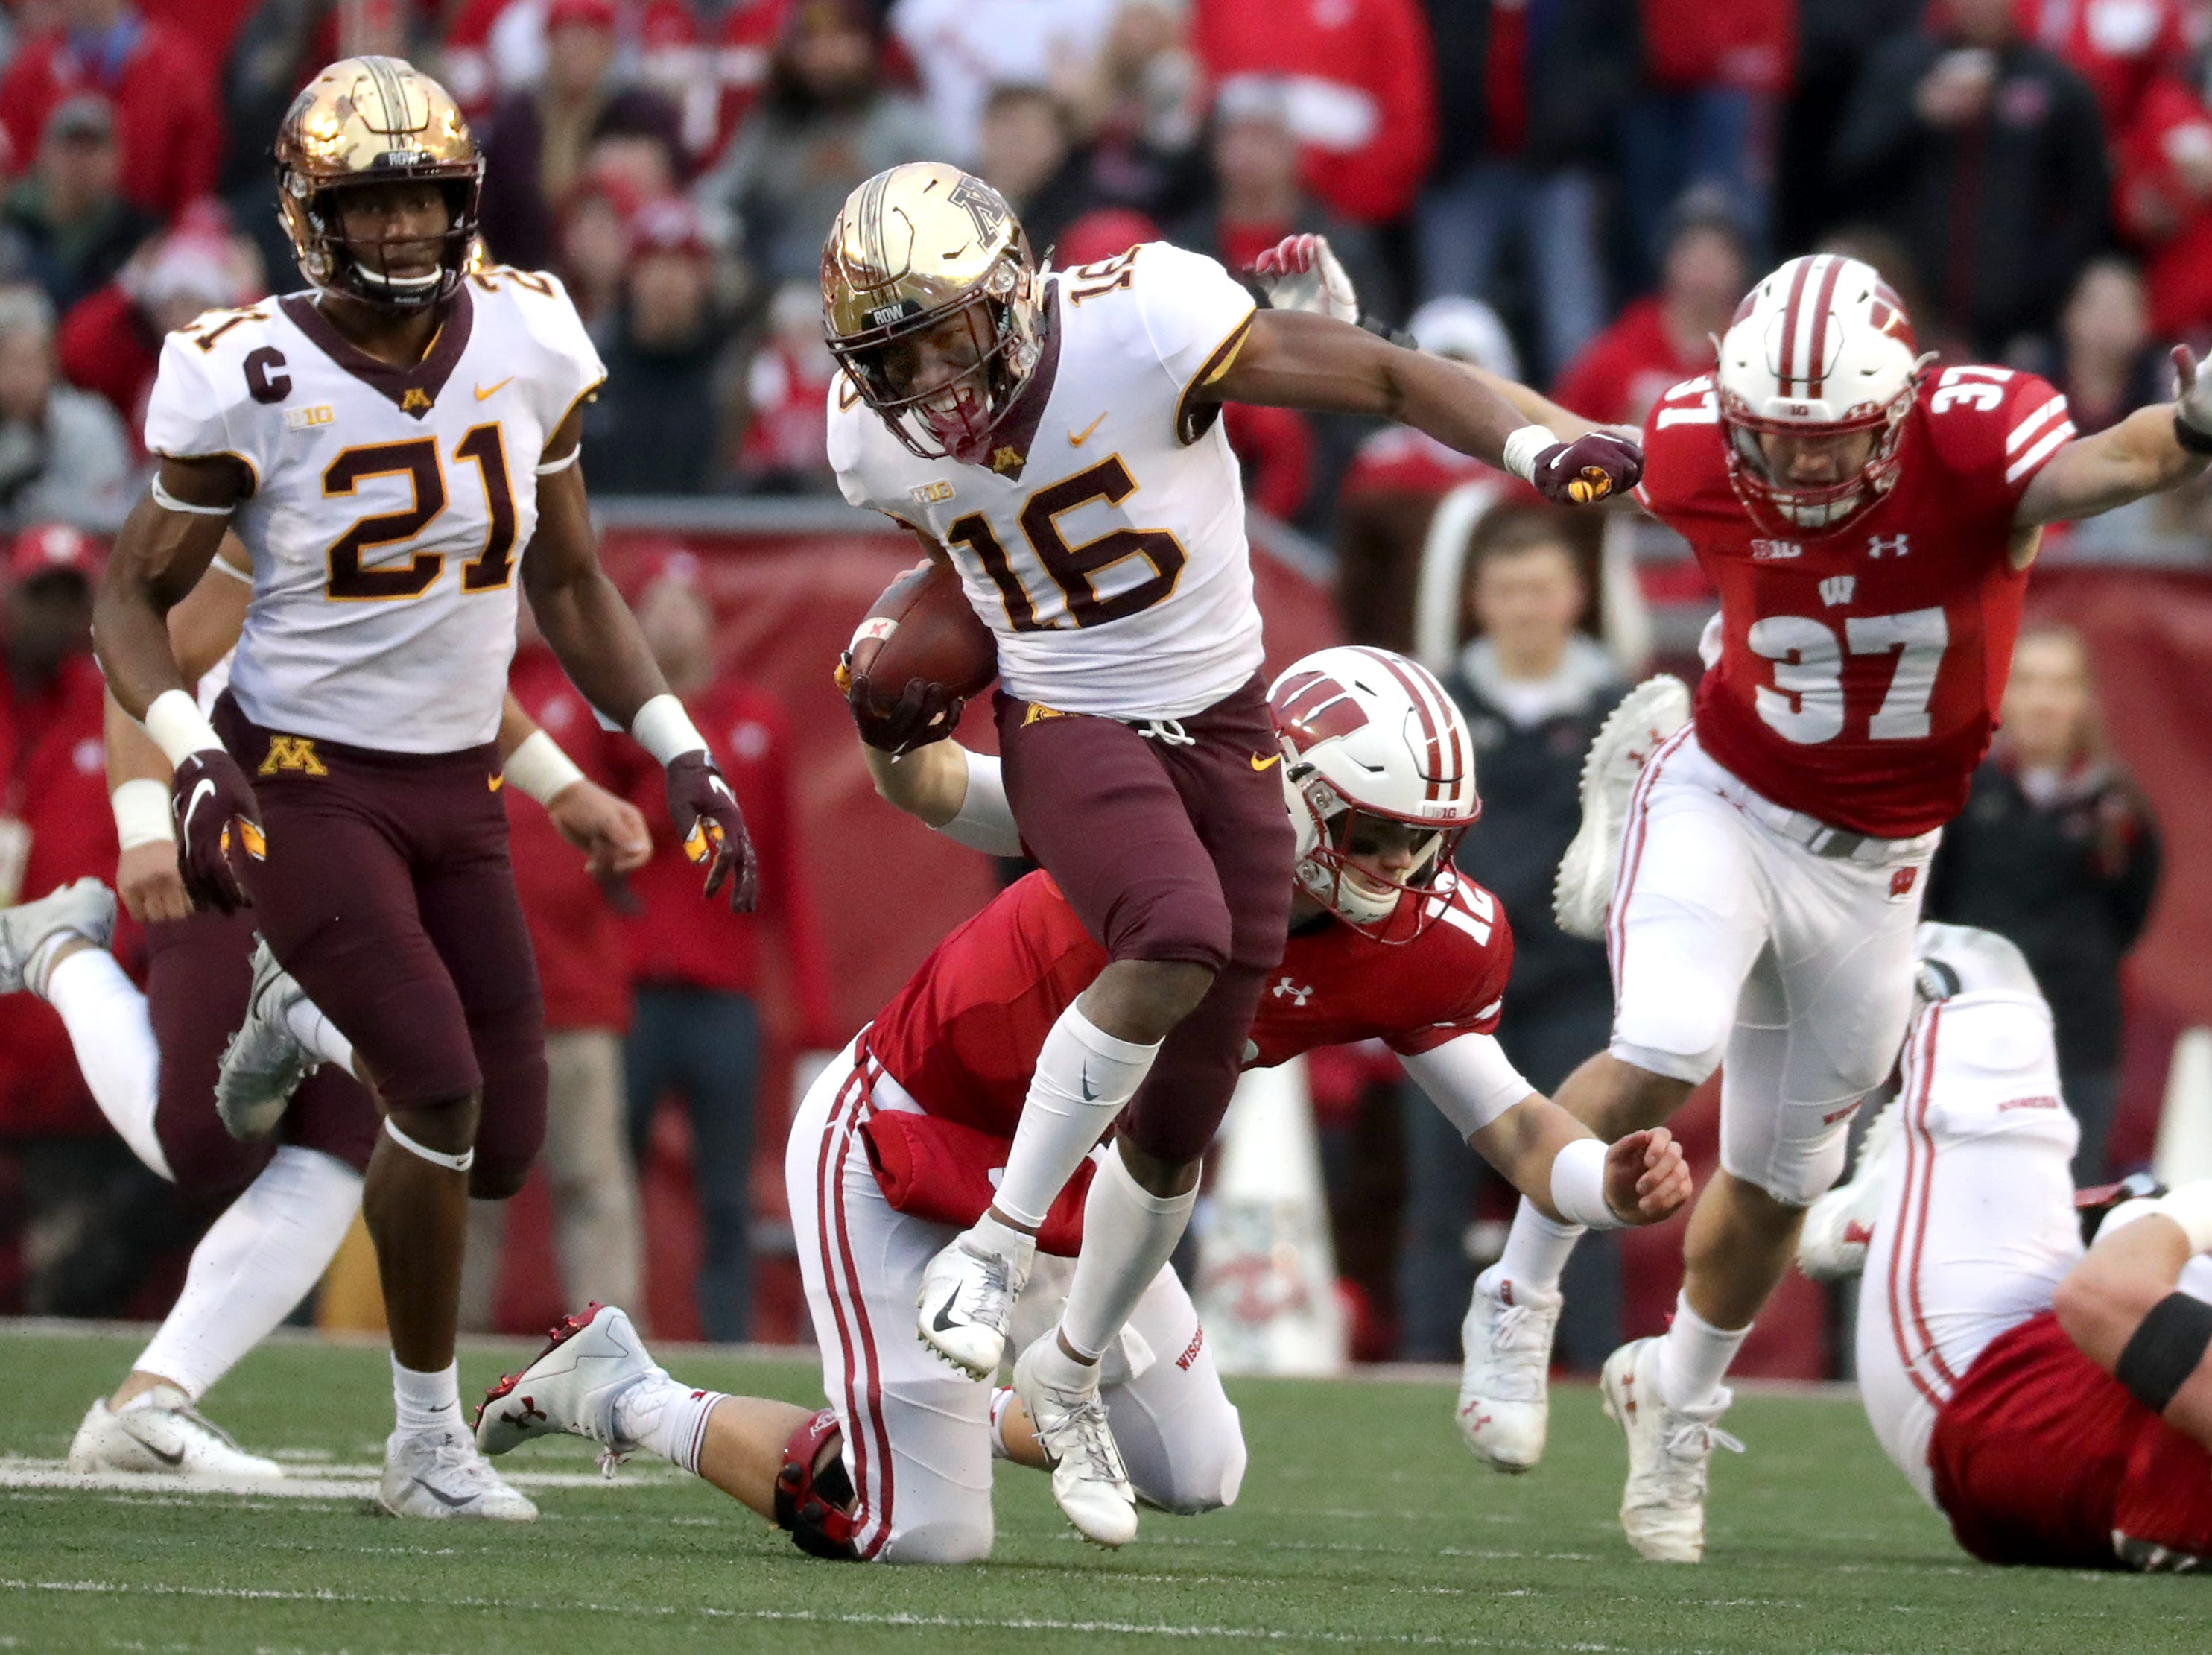 Wisconsin quarterback Alex Hornibrook tries to tackle Minnesota defensive back Coney Durr after throwing an first half interception during their NCAA football game on Saturday, November 24, 2018, at Camp Randall in Madison, Wis.Wm. Glasheen/USA TODAY NETWORK-Wisconsin.